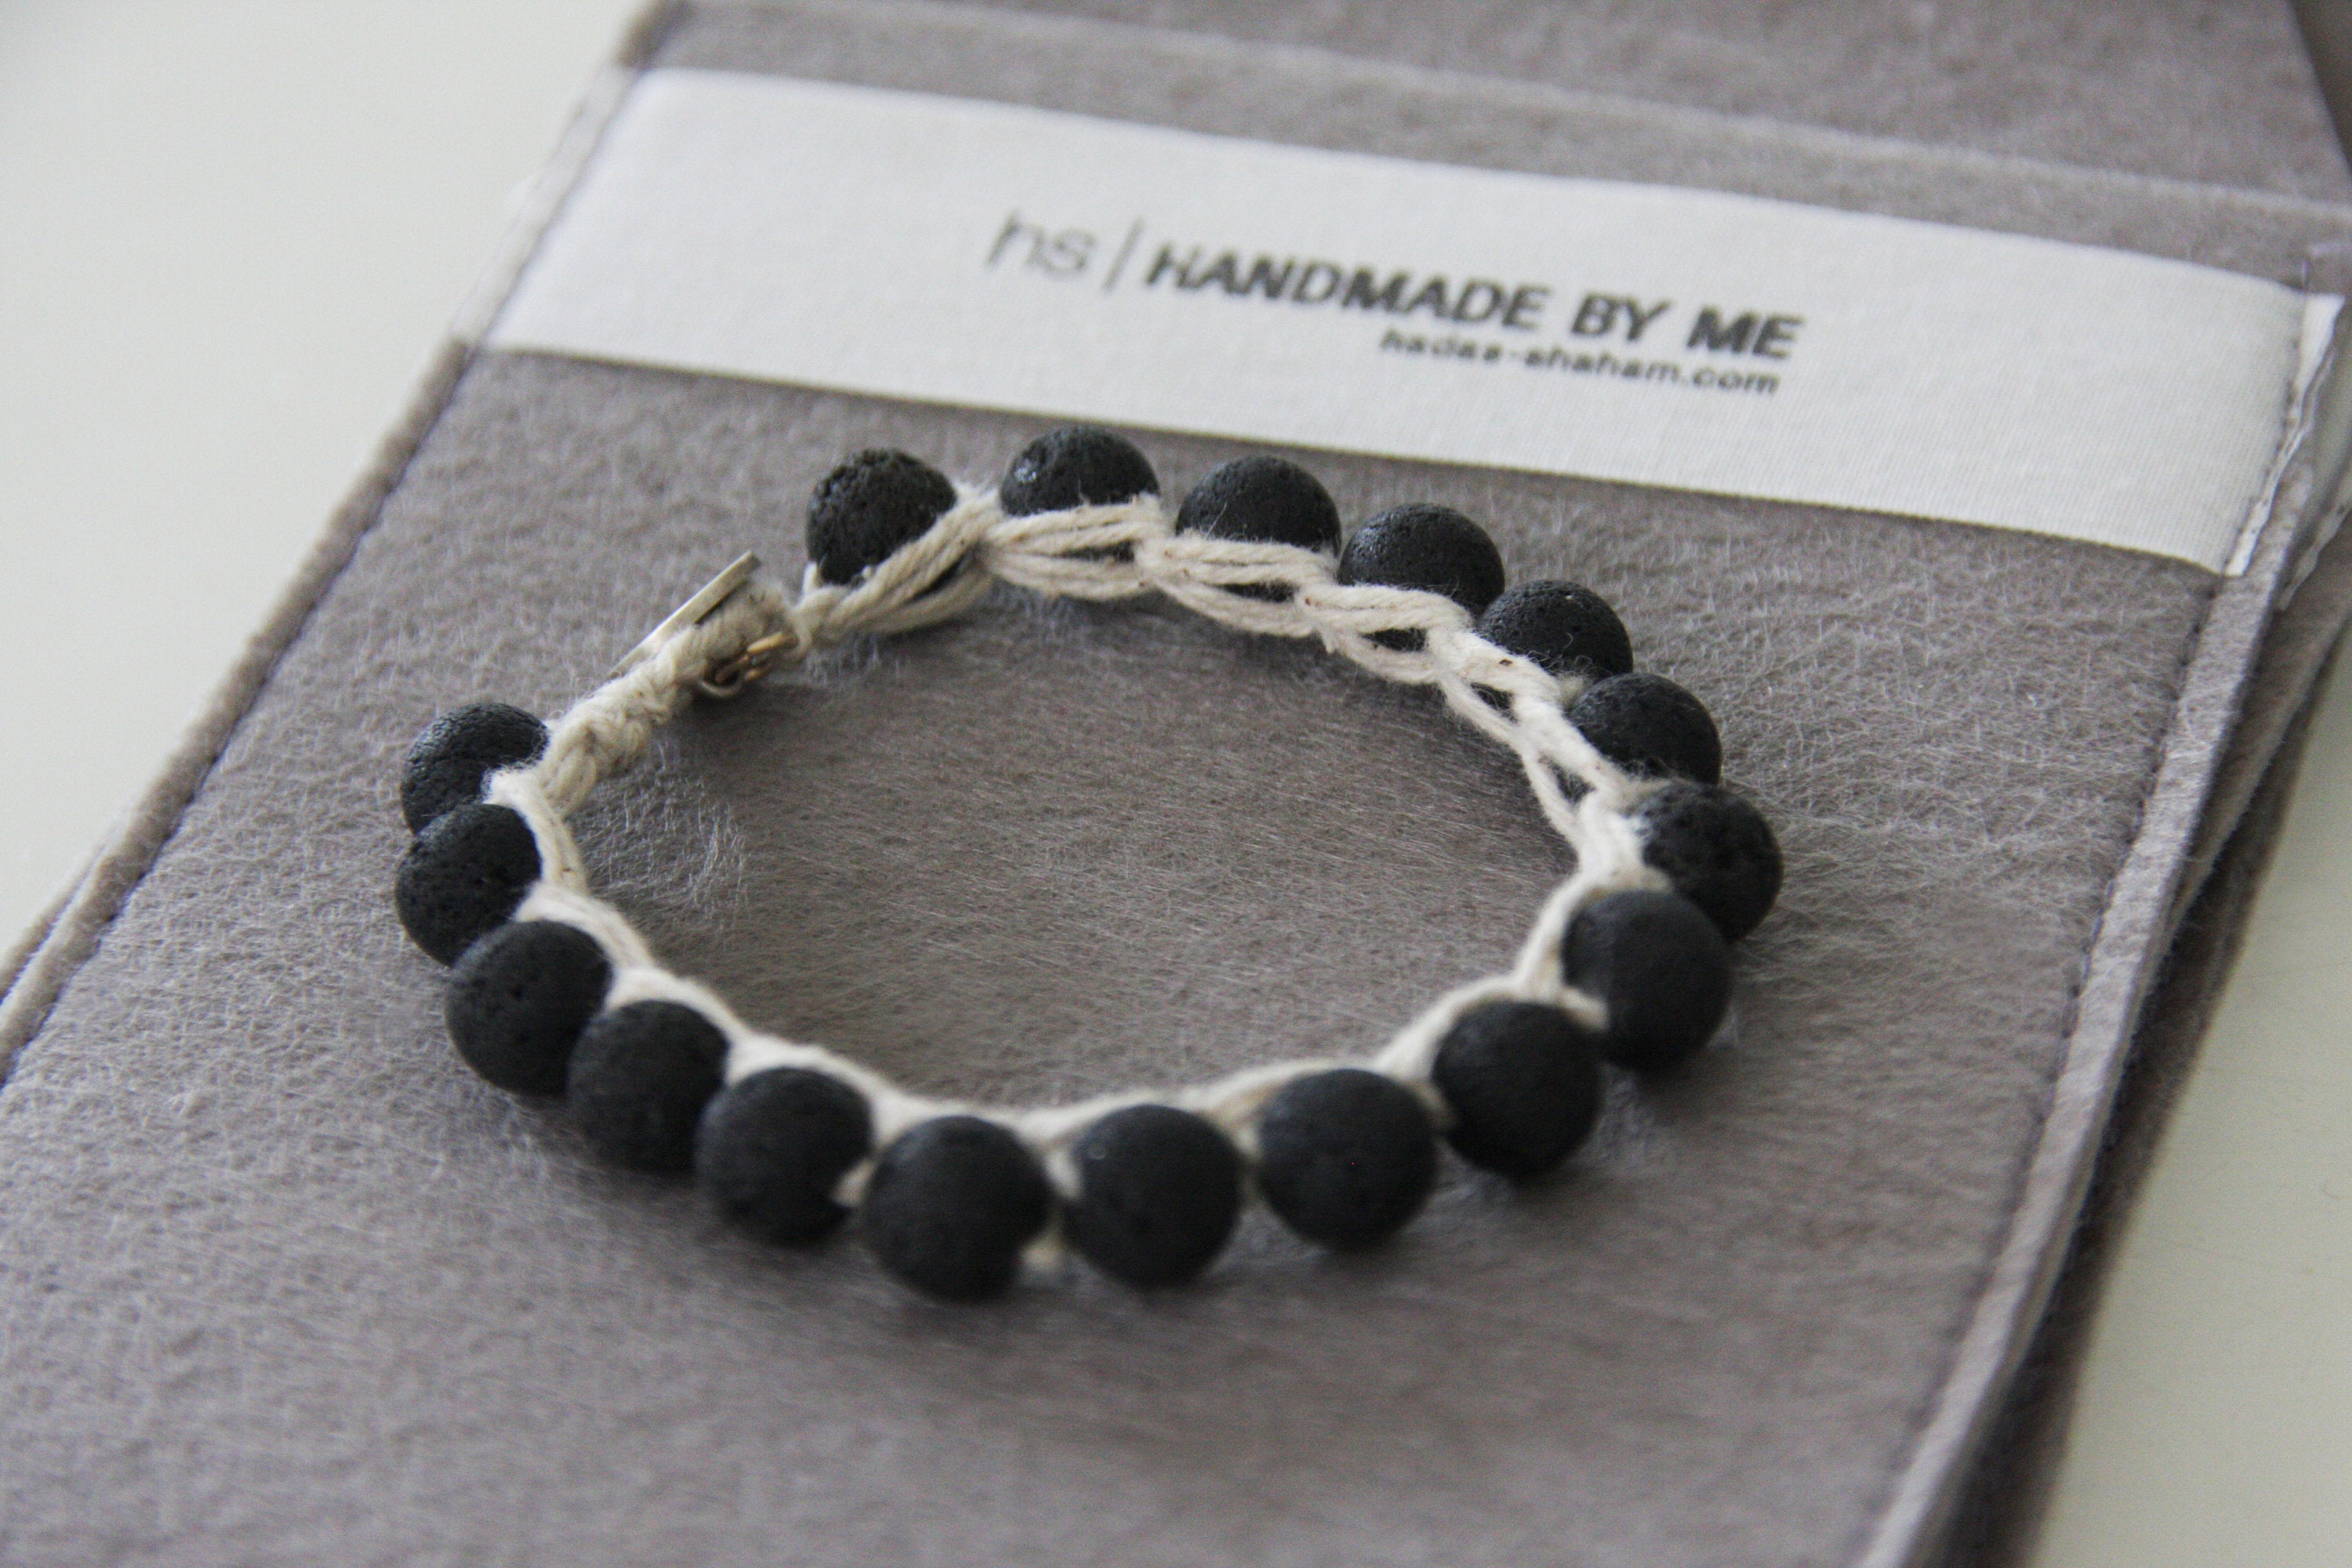 Unisex Black Lava and Silver Button Closer Bracelet / Hand-Knitted Bracelet With Raw Thread By Hadas Shaham - hs